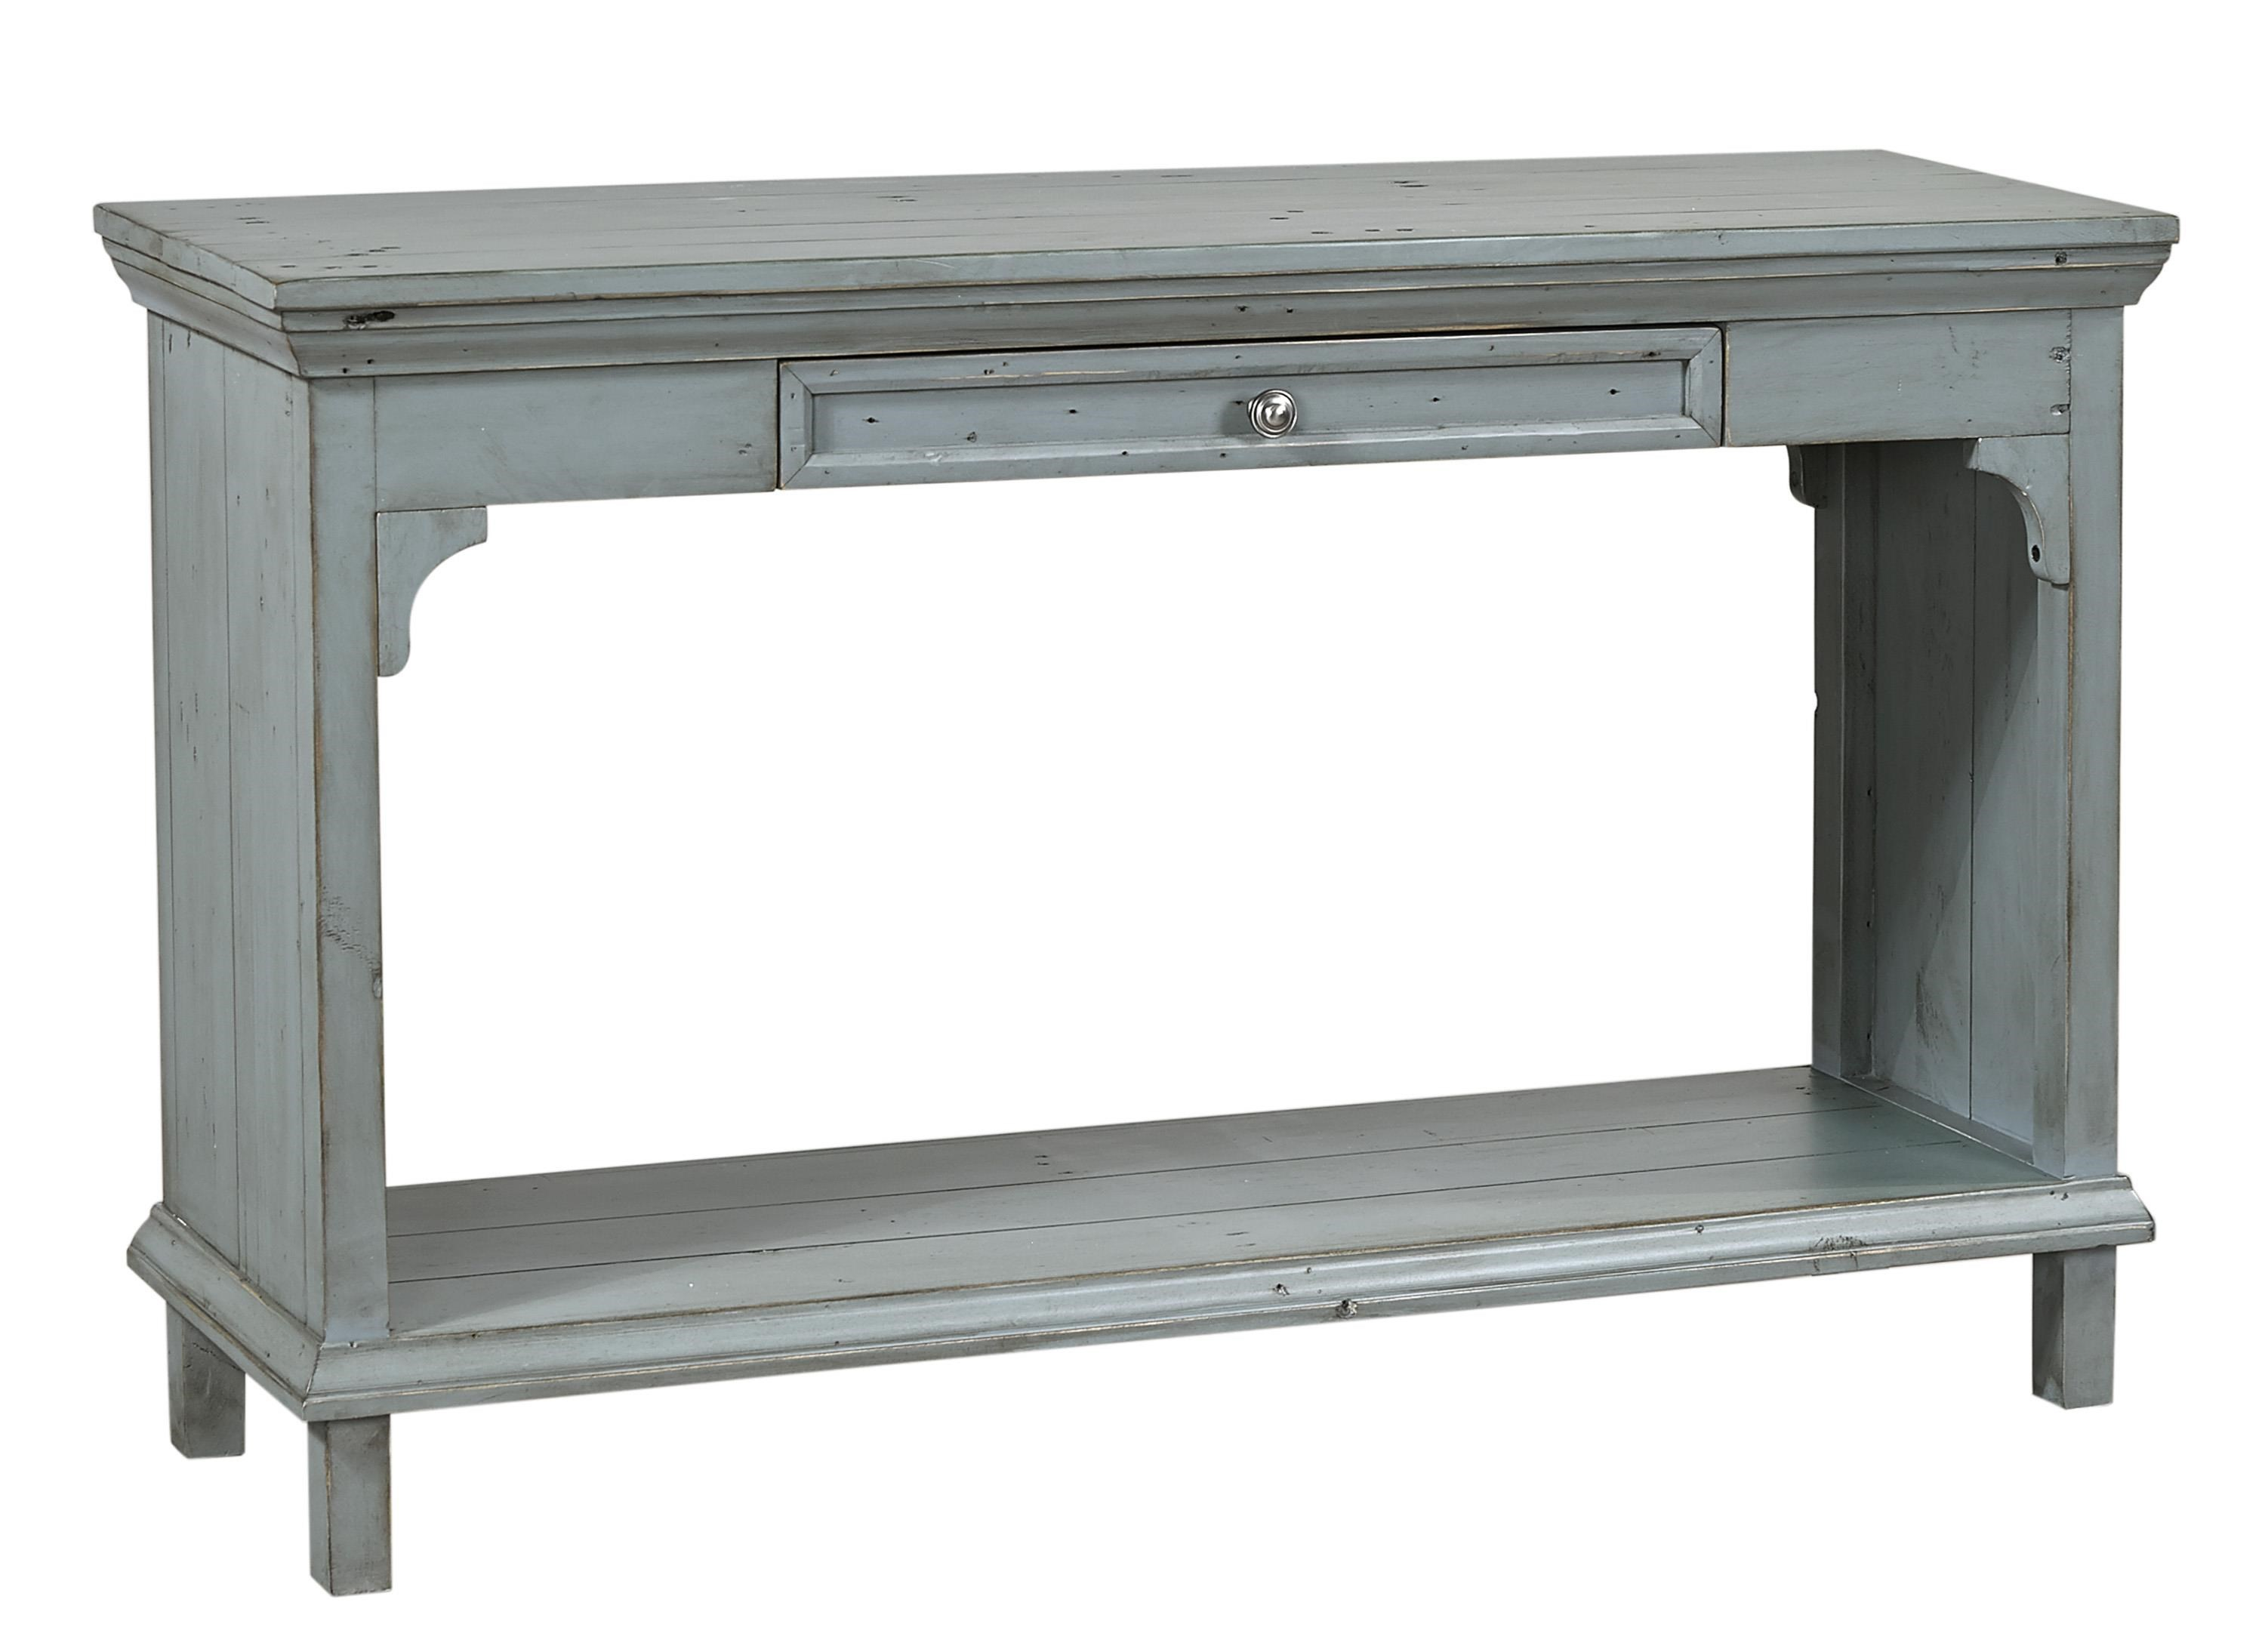 Highland Court Brentley Brentley Sofa Table - Item Number: 155405137